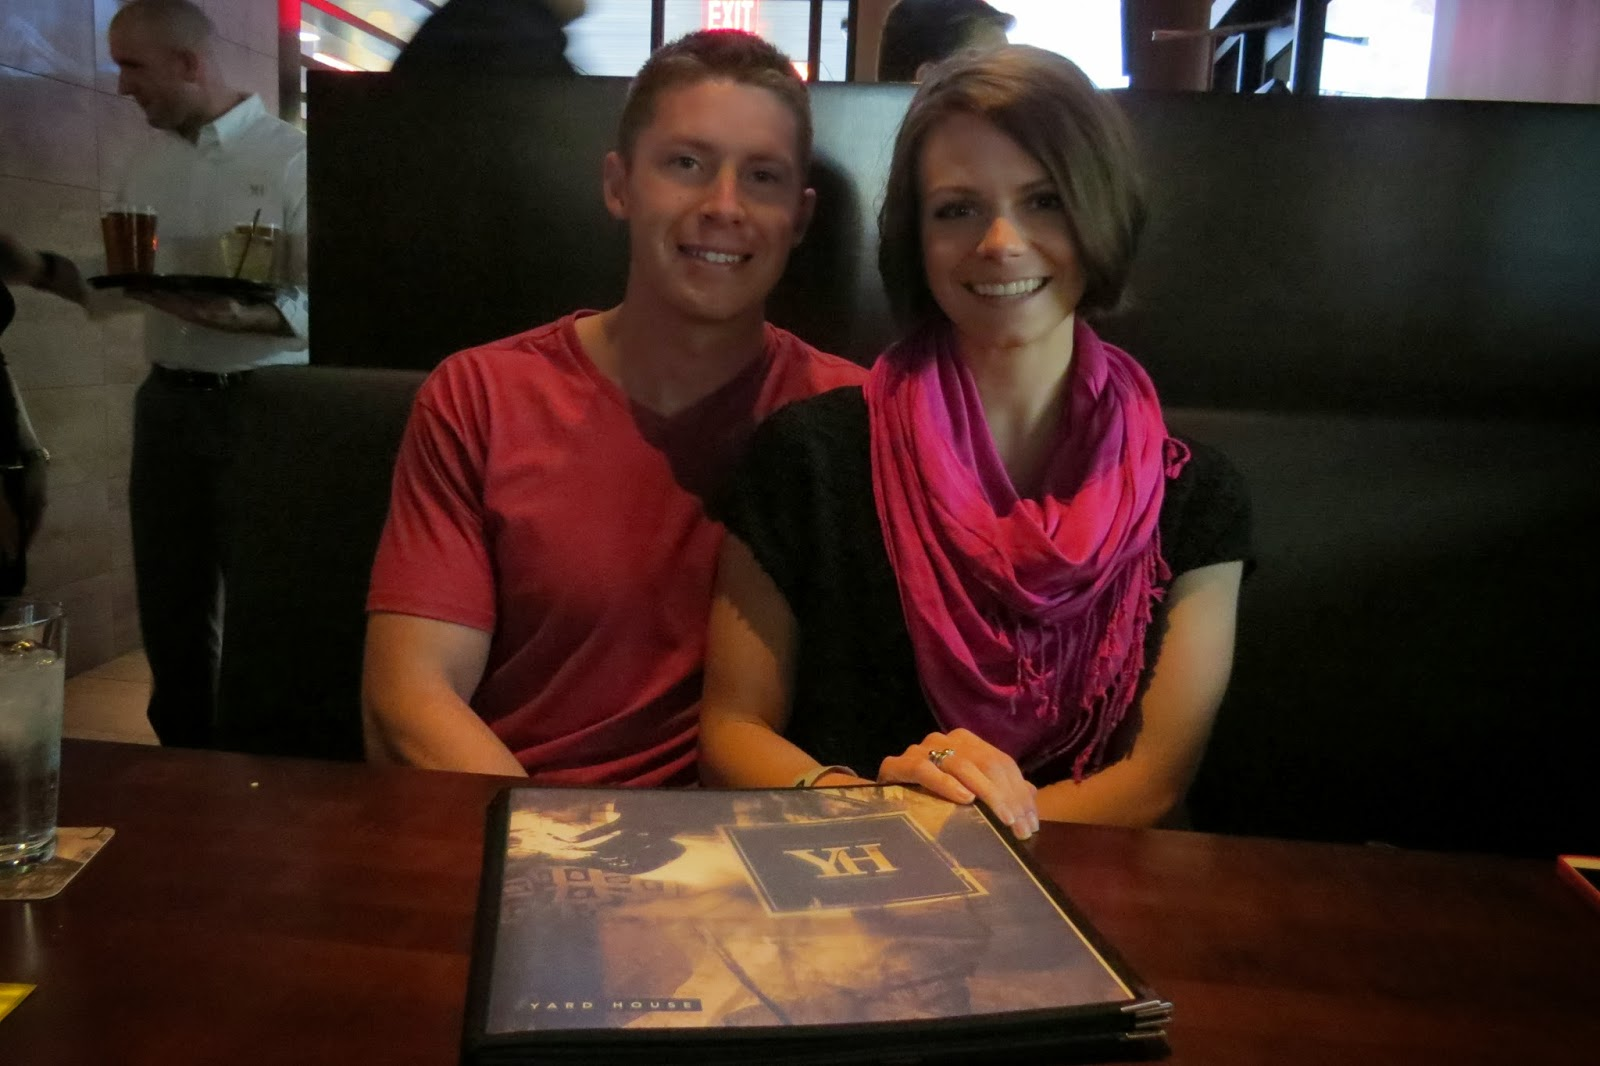 Yard House at The Village at Meridian, Idaho